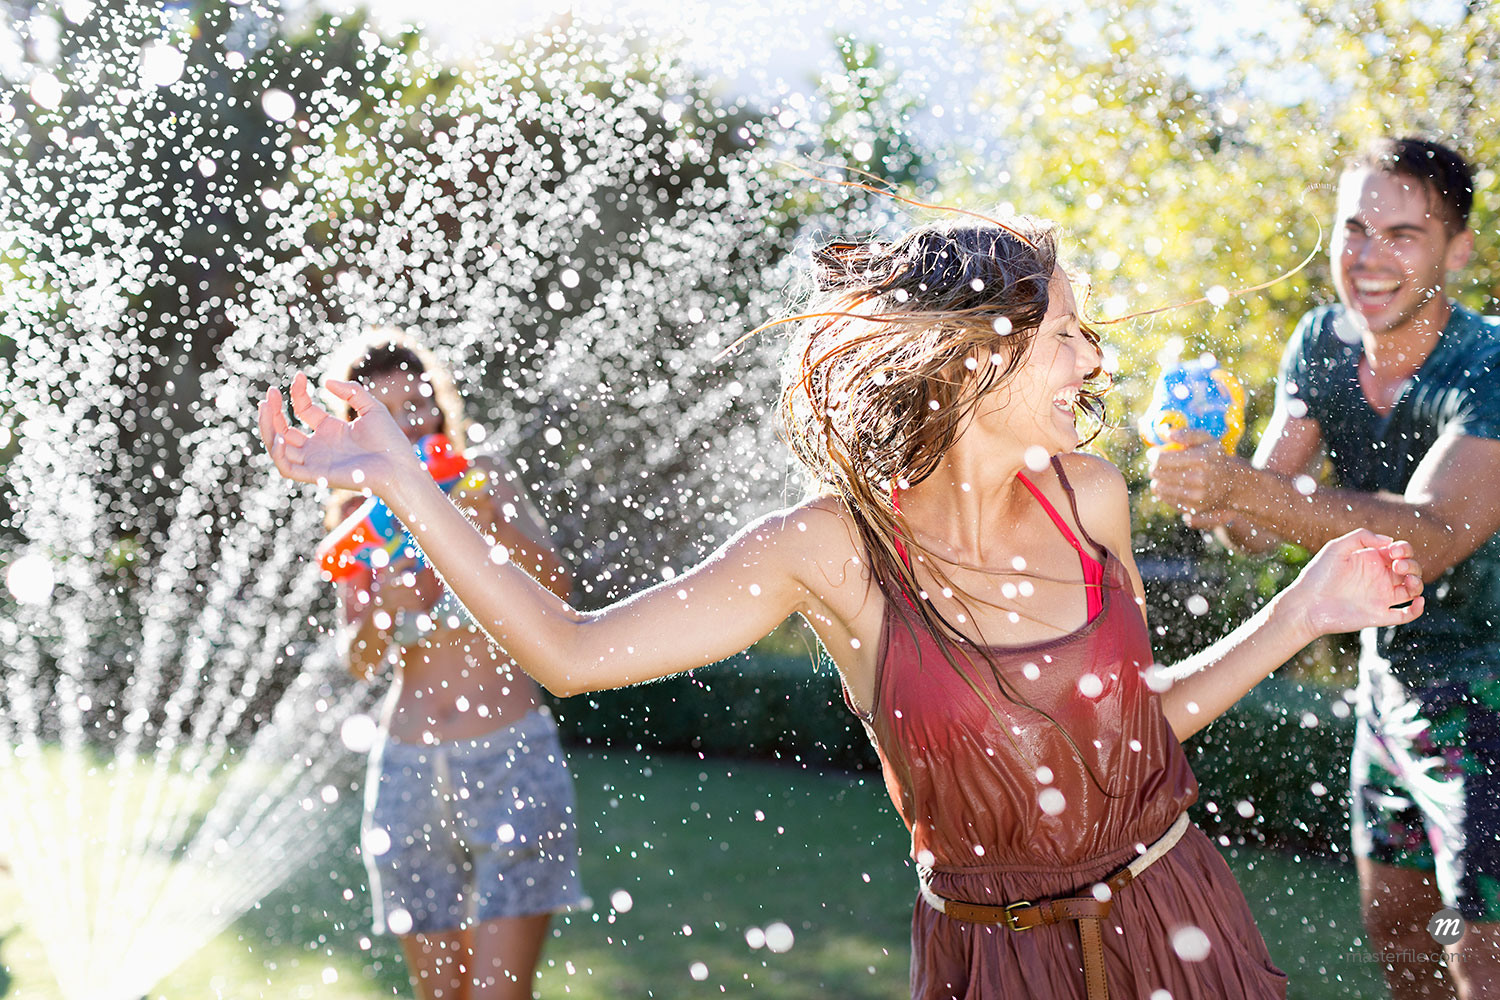 Friends playing with water guns in sprinkler  © Masterfile Royalty-Free